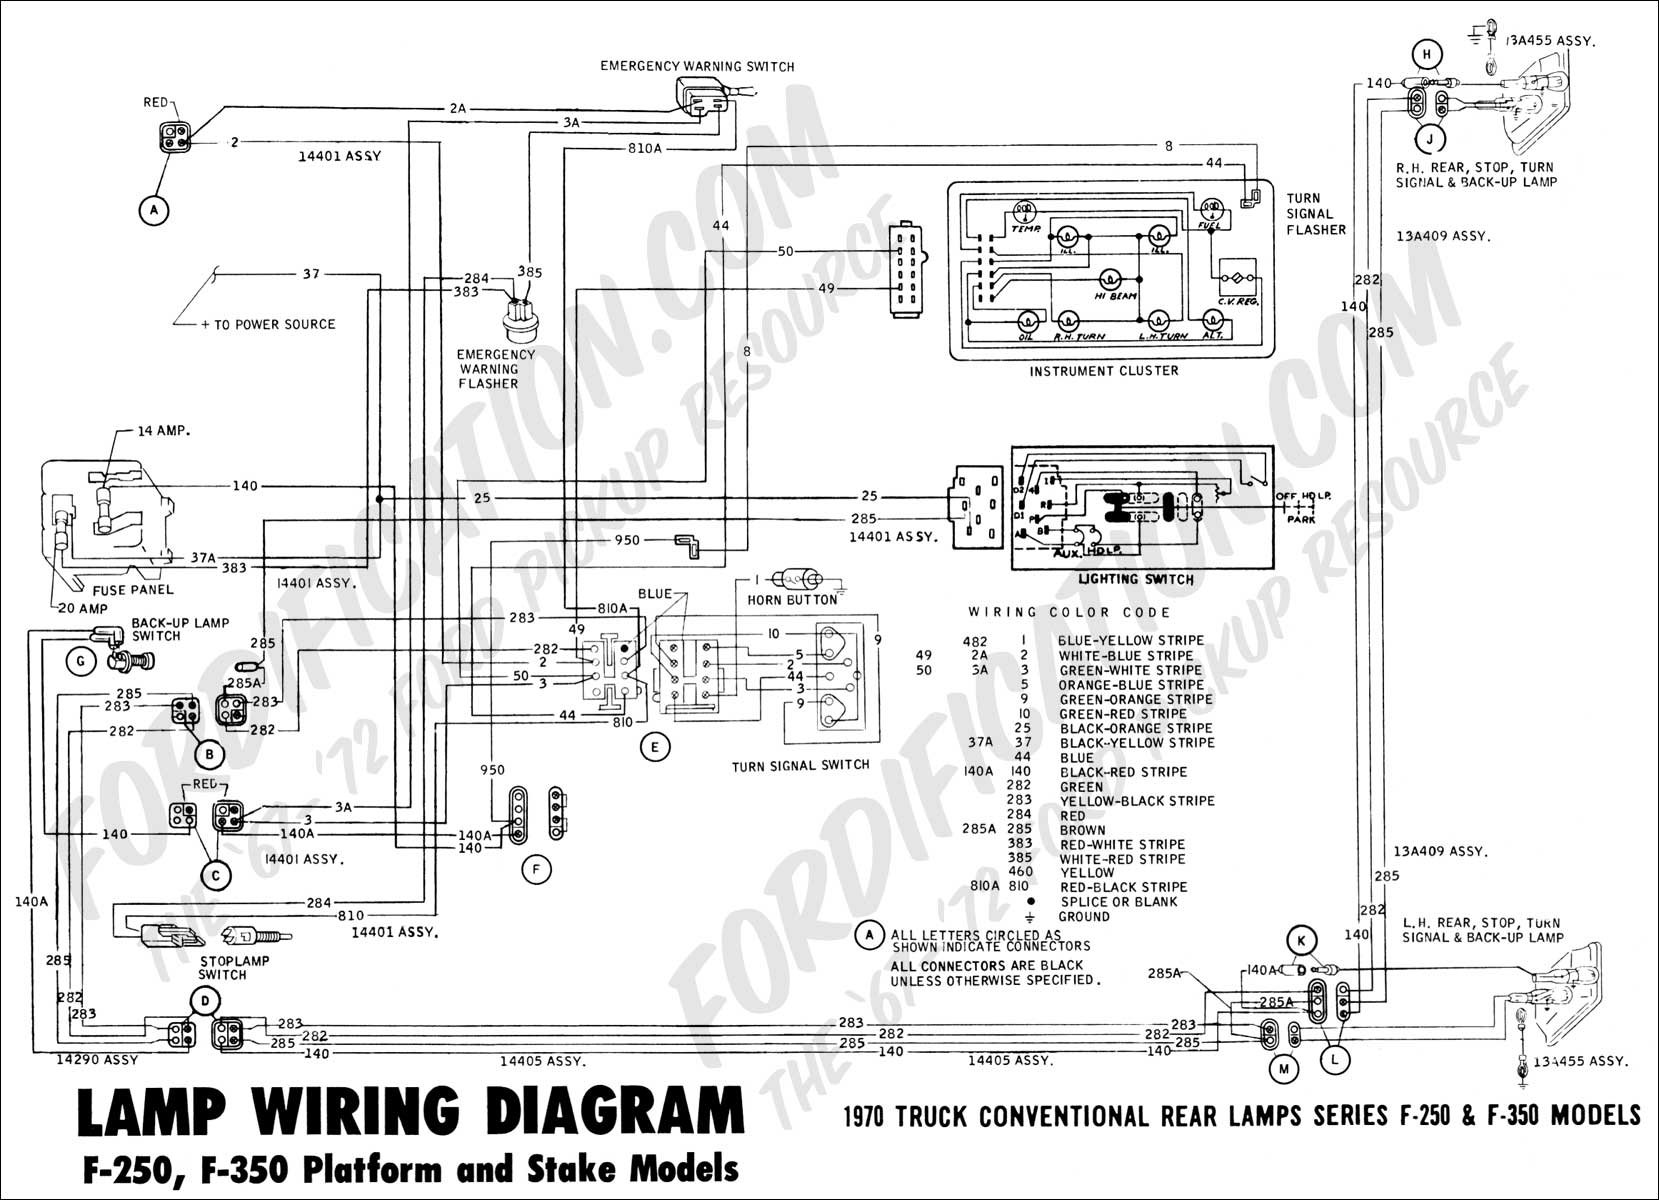 2006 F350 Diesel Fuse Panel Diagram Simple Guide About Wiring Box Ford Truck Technical Drawings And Schematics Section H F250 60